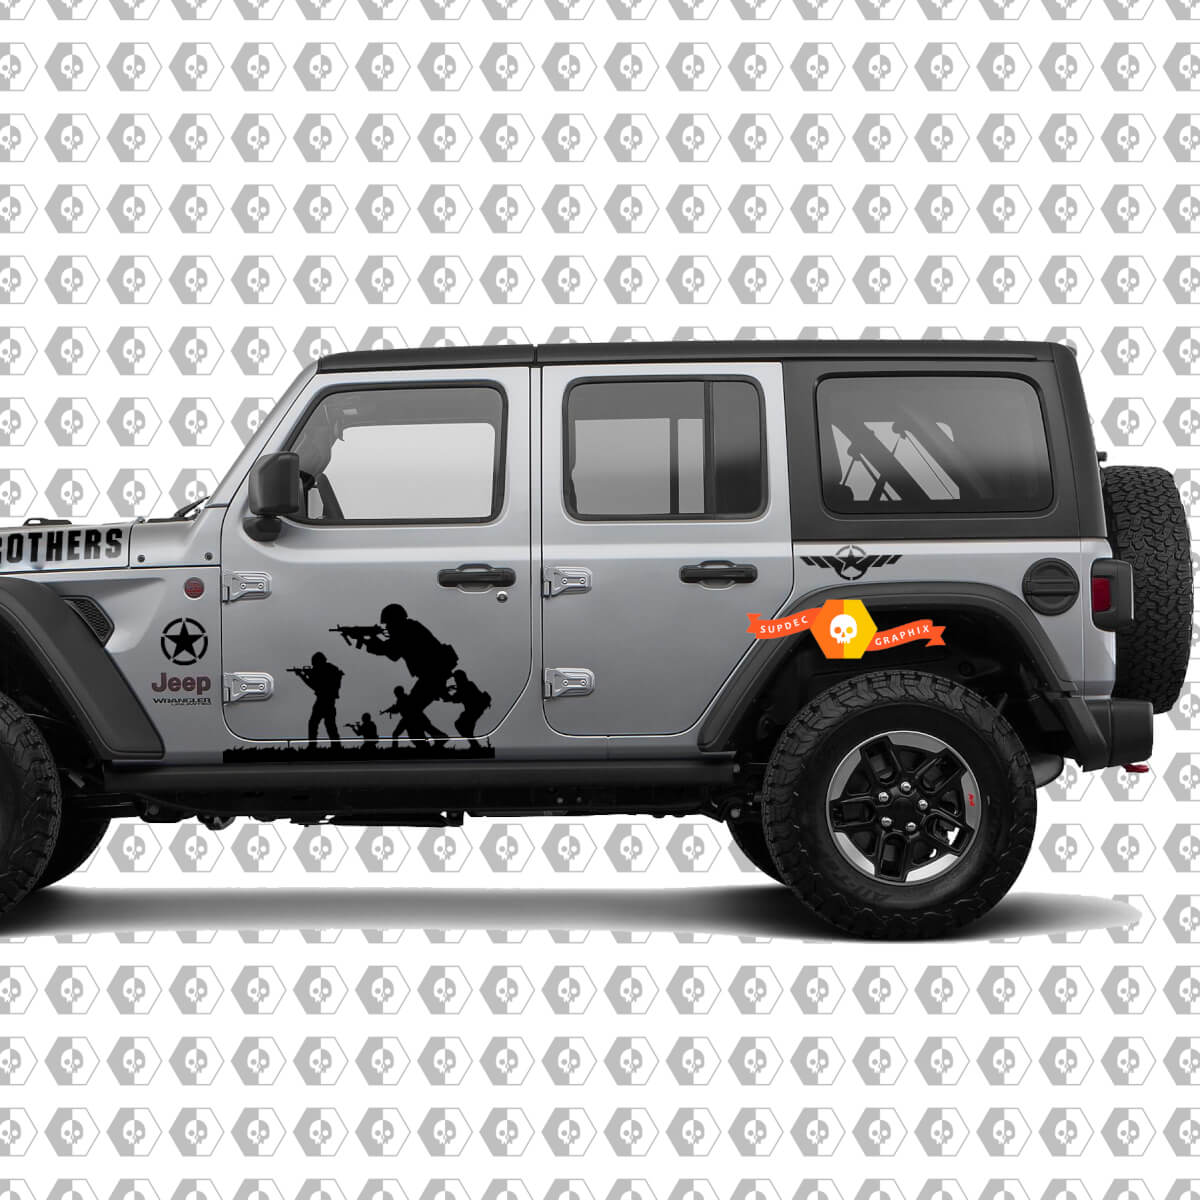 Band of Brothers US Army 9pc Vinyl Decal Kit for Jeep Wrangler